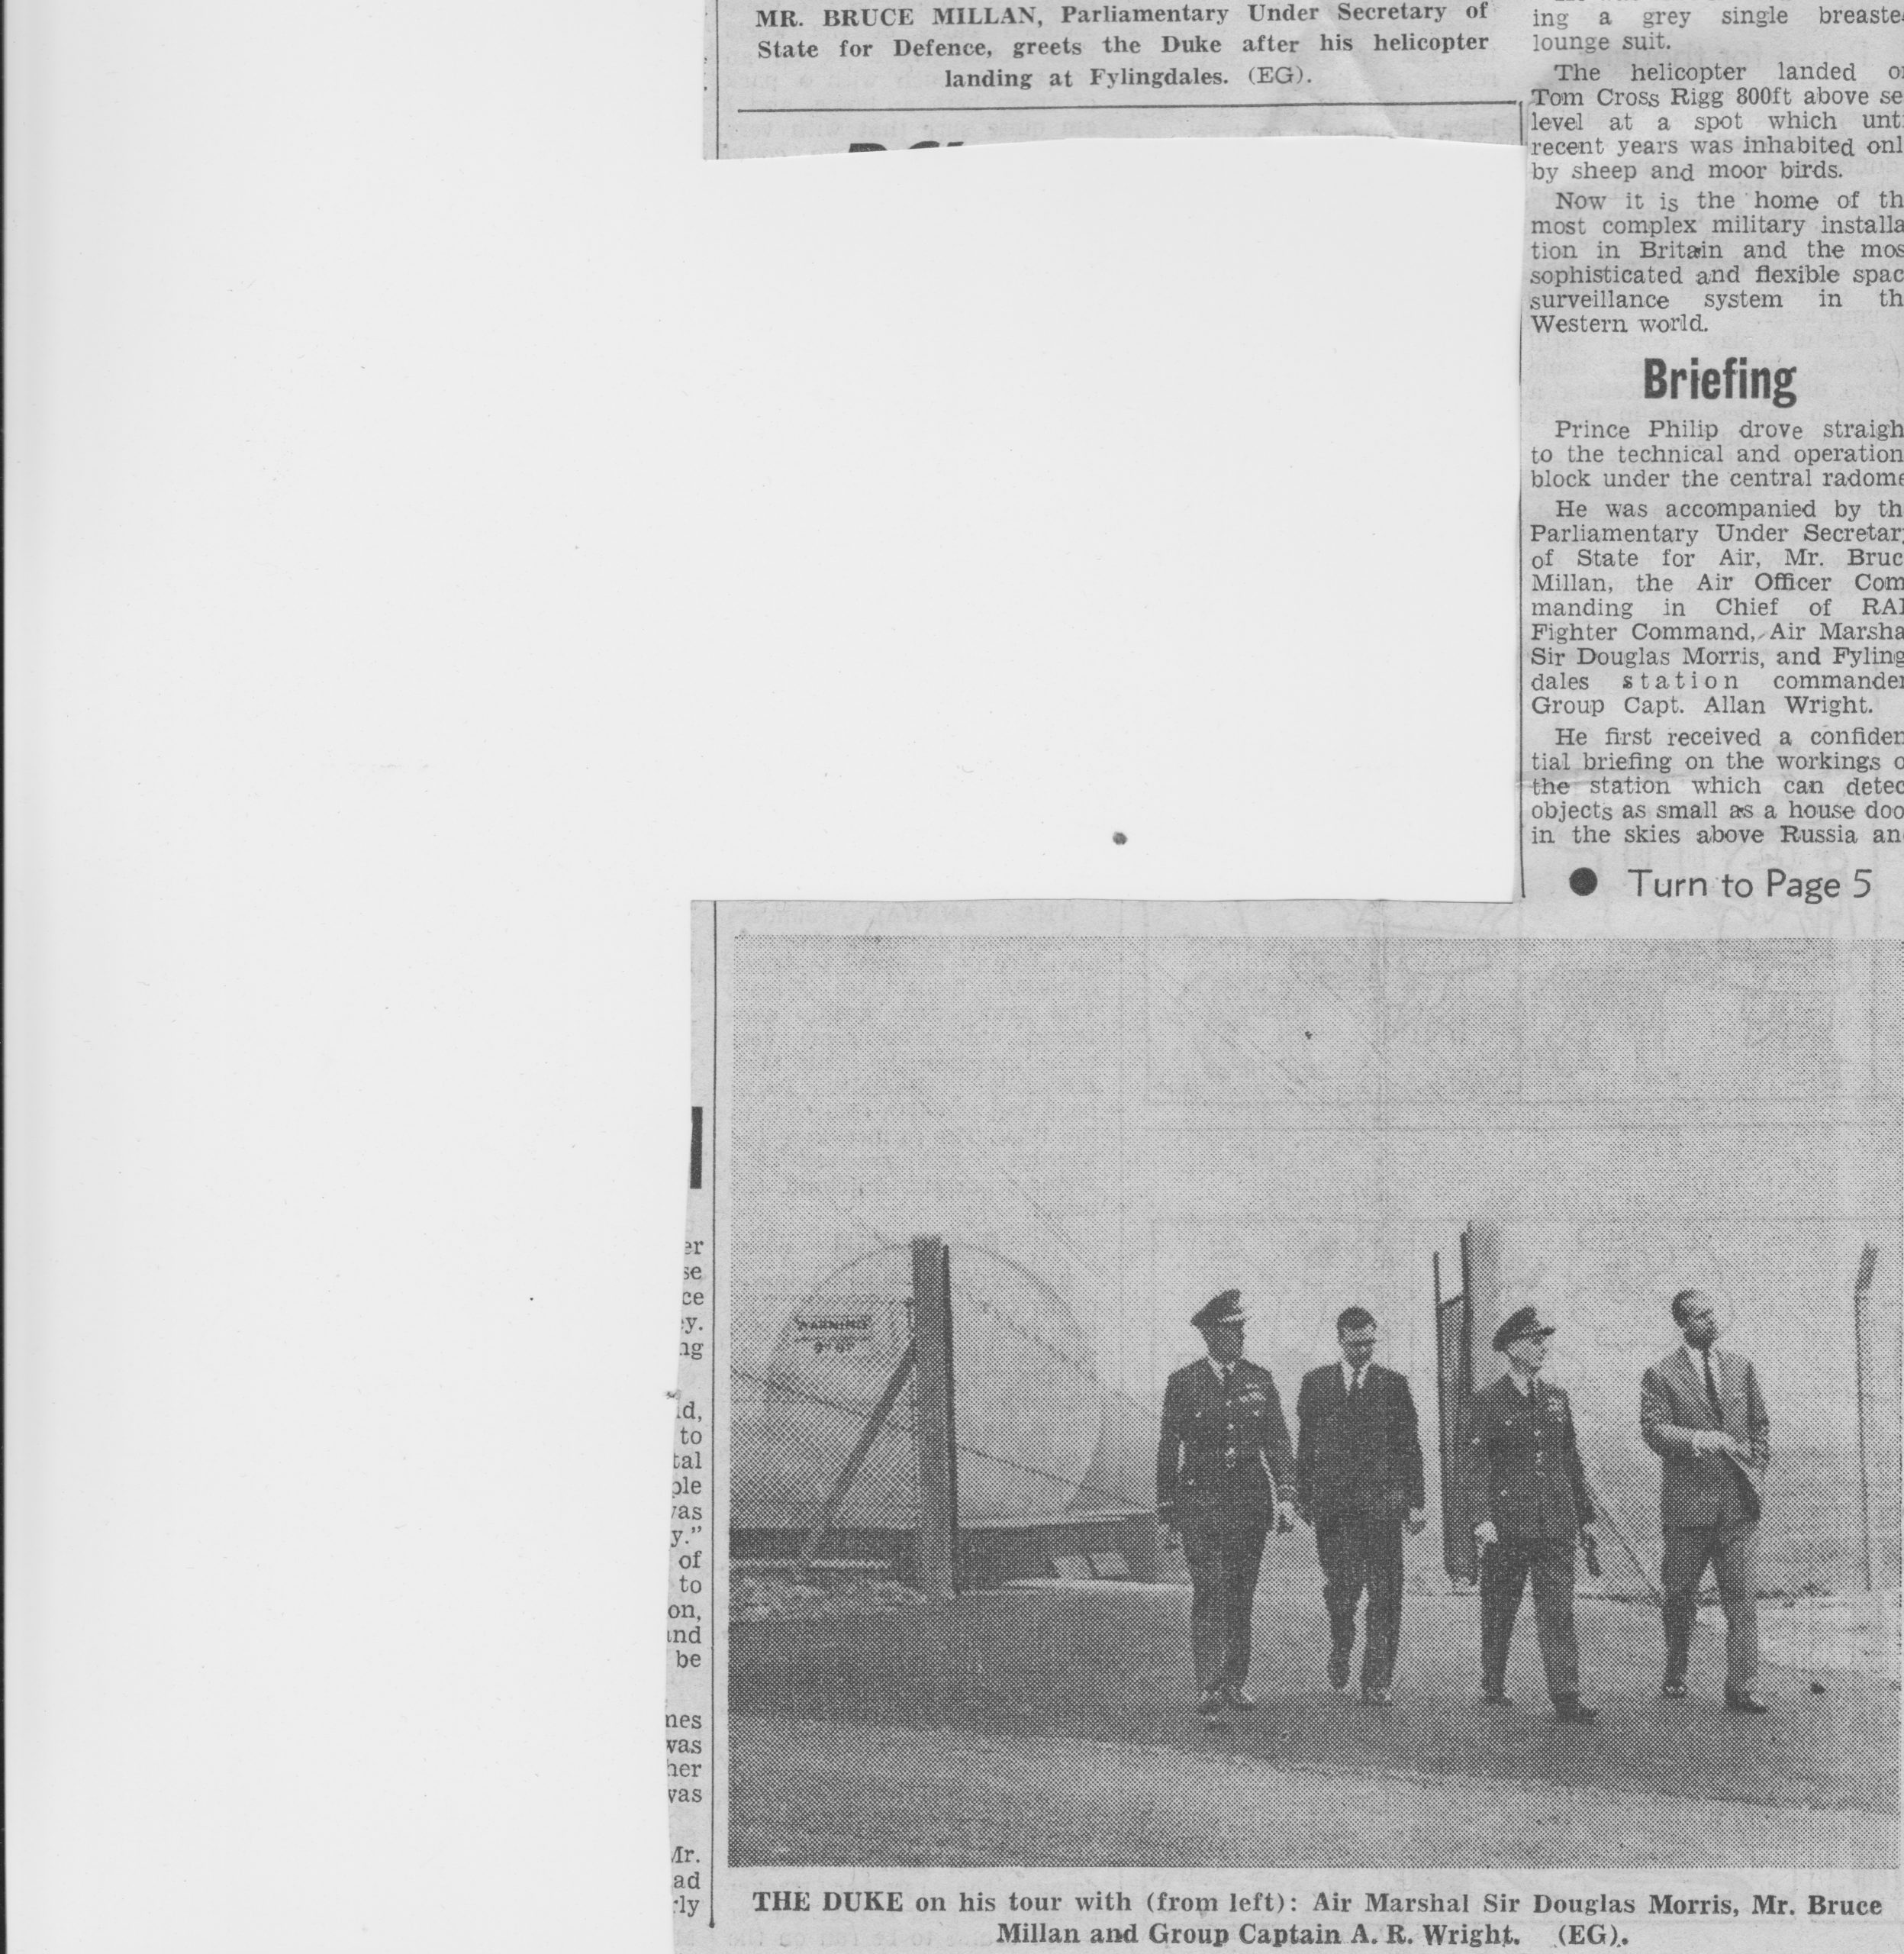 More text on the Duke's visit to Fylingdales